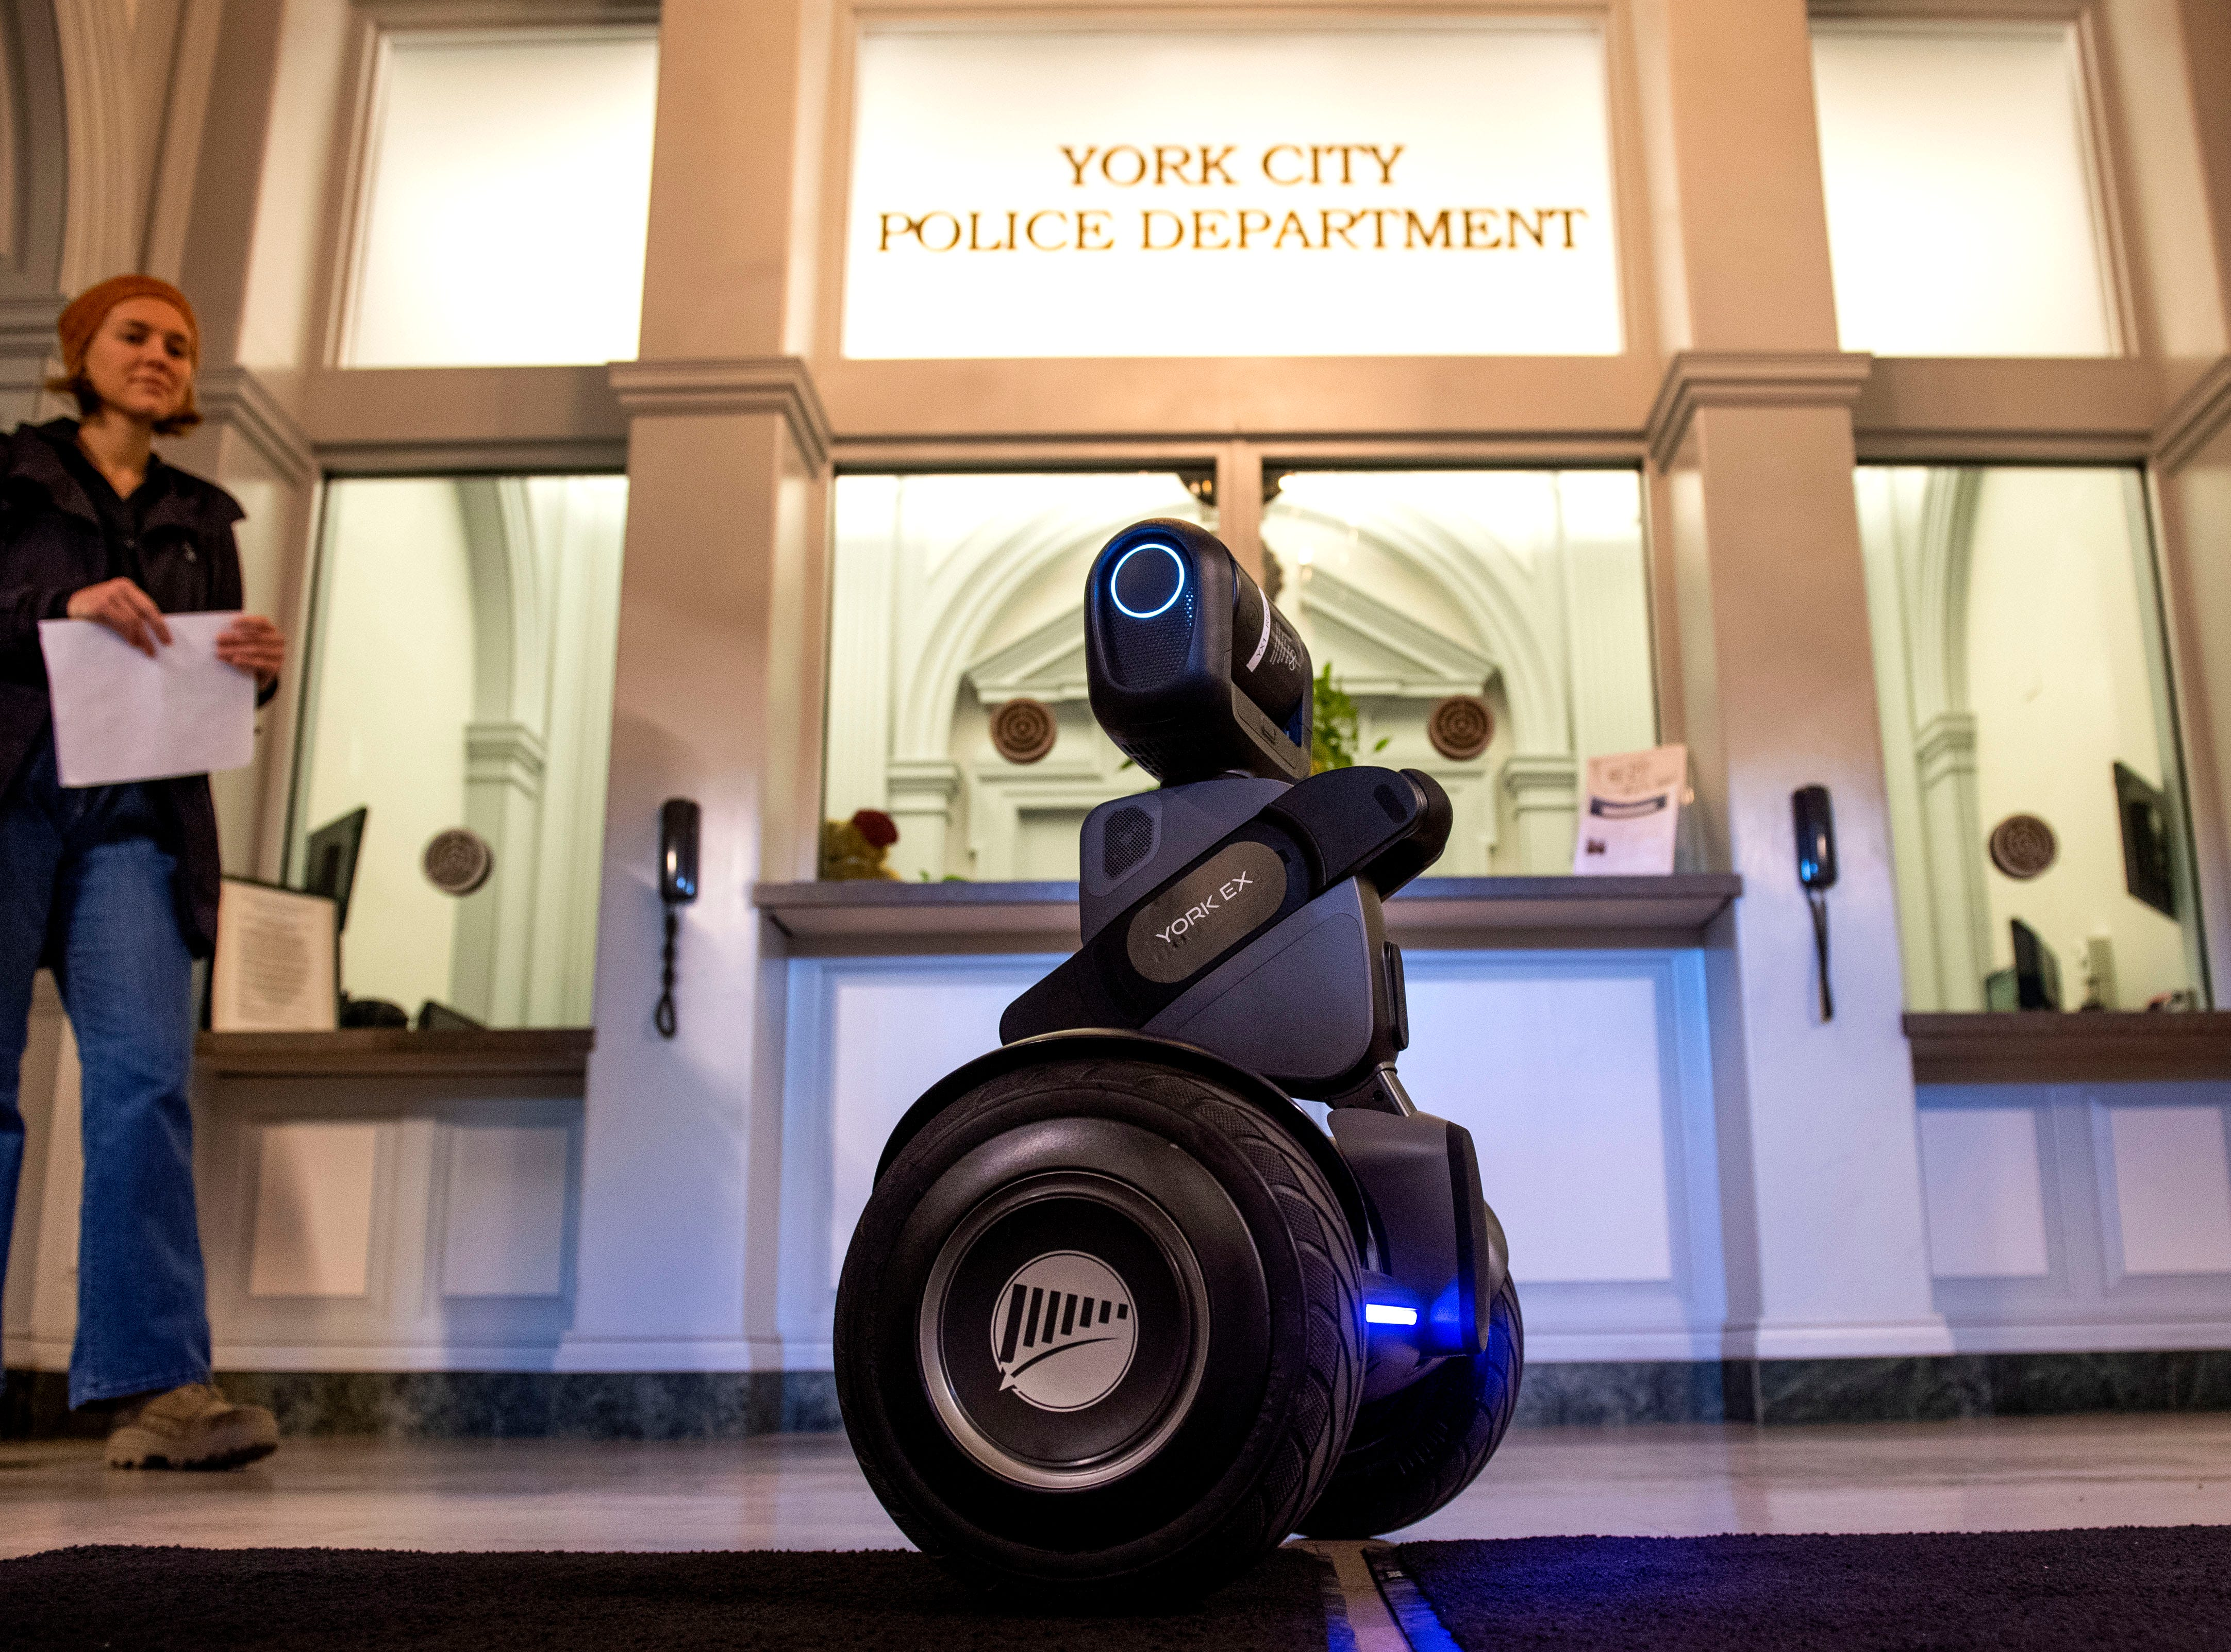 The 'Loomo,' seen here in the York City Police Department, is a two-wheeled robot that York Exponential believes could help city police in the future. Company CEO John McElligott gave a demonstration to Officer Derek Hartman and others on Thursday.